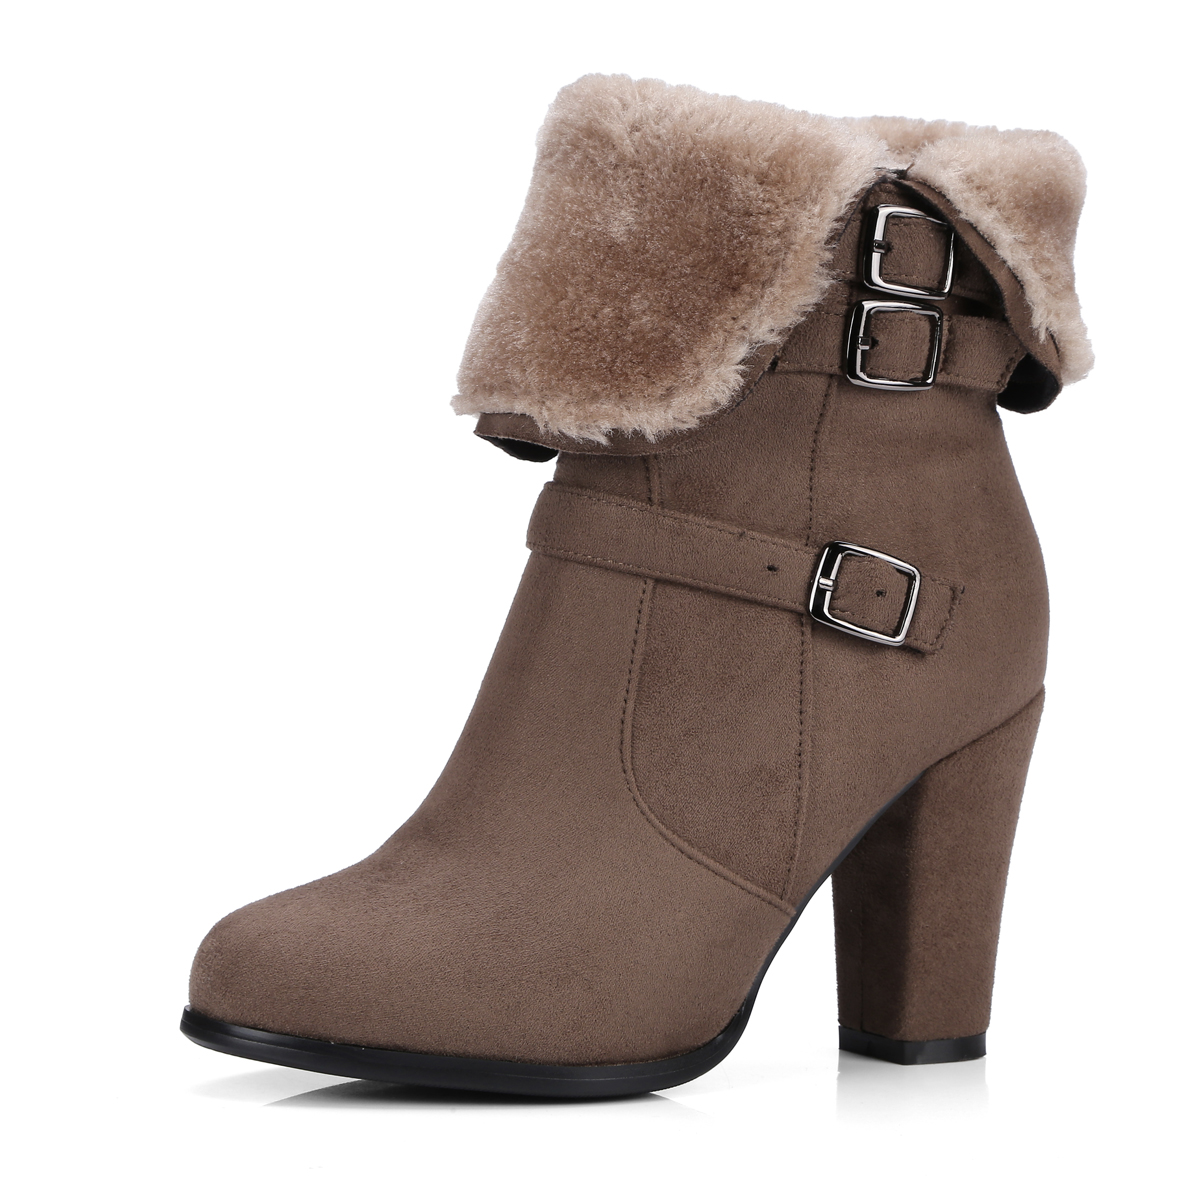 4161058f1bd3f NEMAONE Winter Women Round Toe Ankle Boots High Heels Shoes Double Buckle  Platform Short Martin Booties Size 33-43